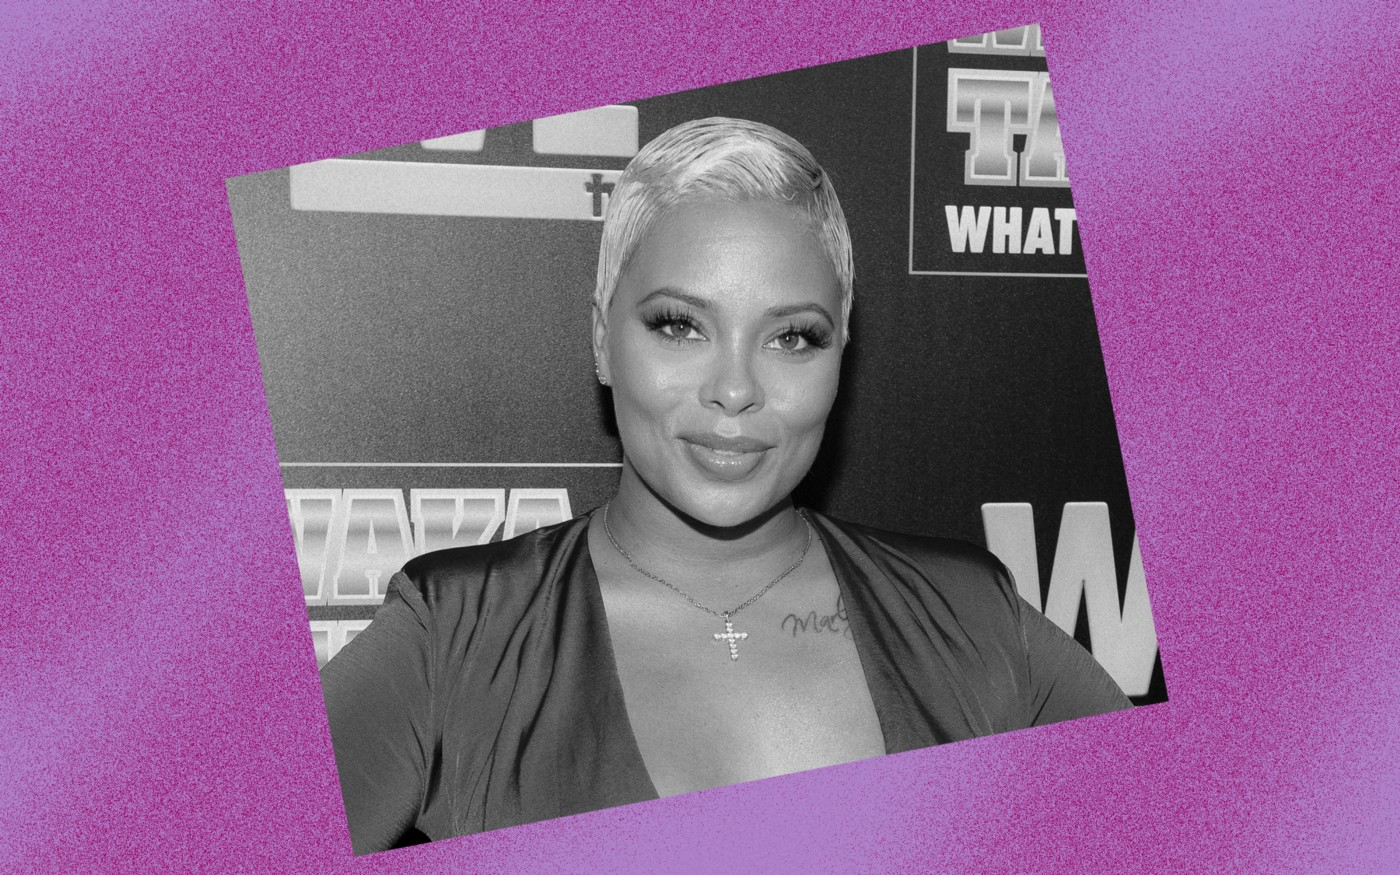 Black and white photo of Eva Marcille against a violet background.